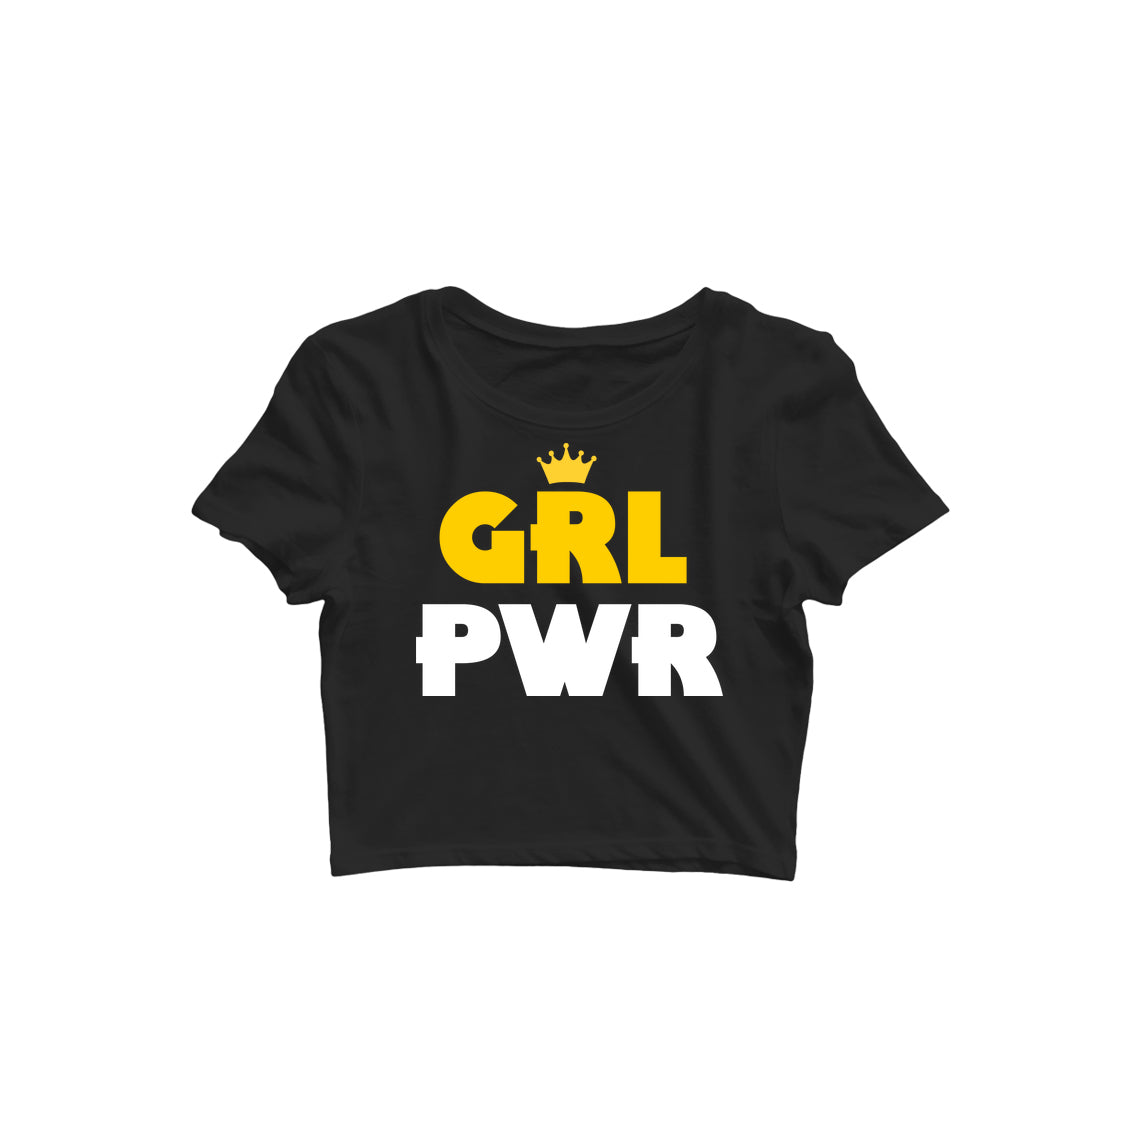 Girl Power - Almytees